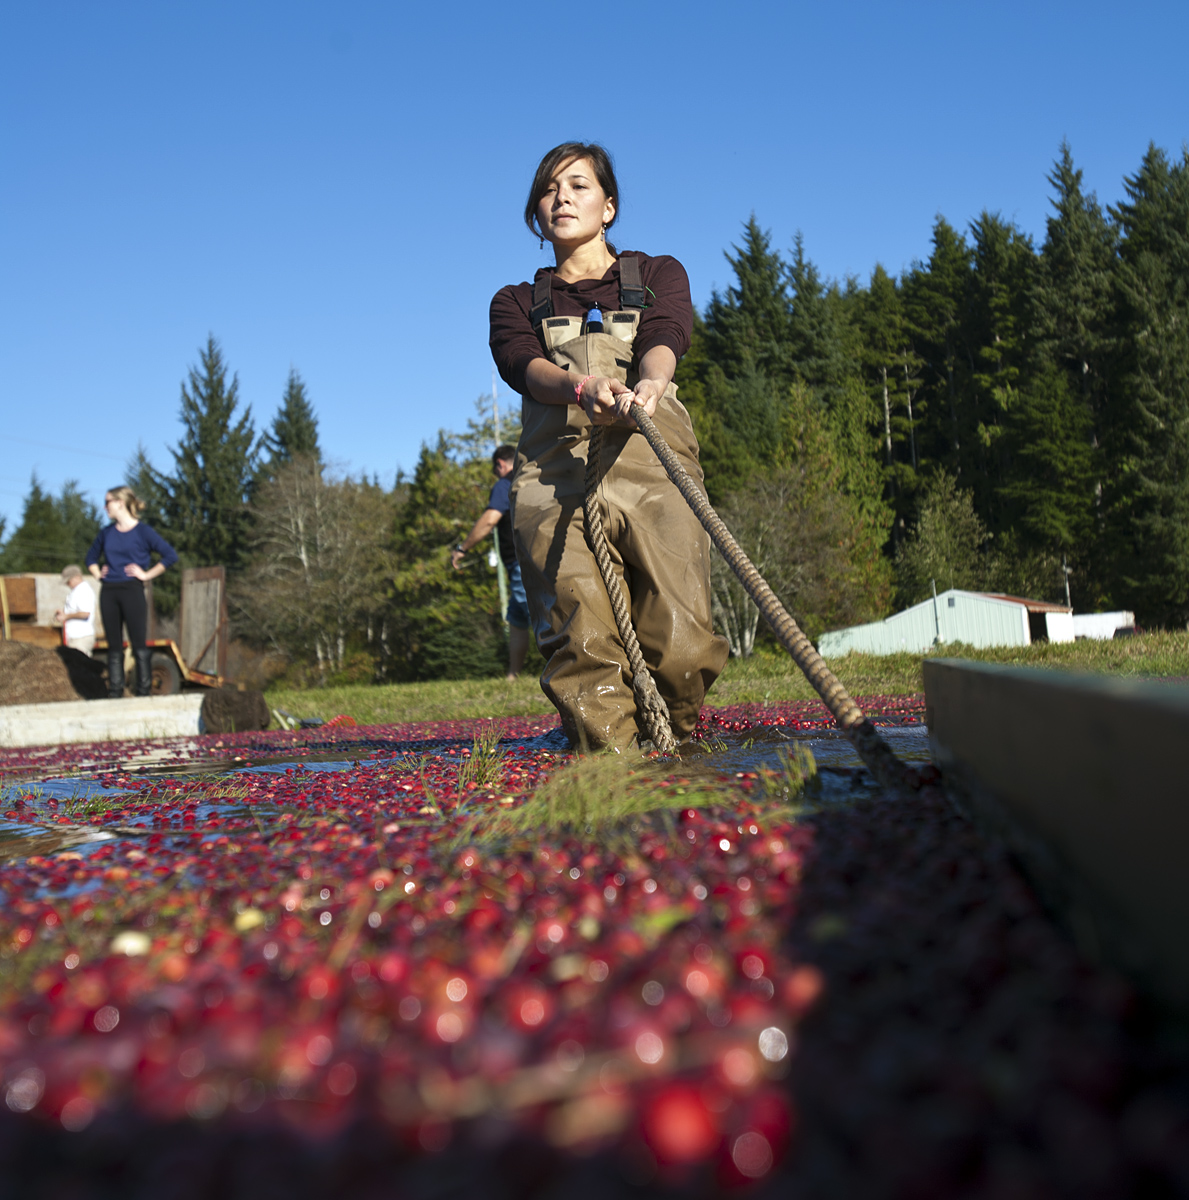 Jessika Tantisook rounding up freshly harvested cranberries at Starvation Alley Farms. Copyright Giles Clement.